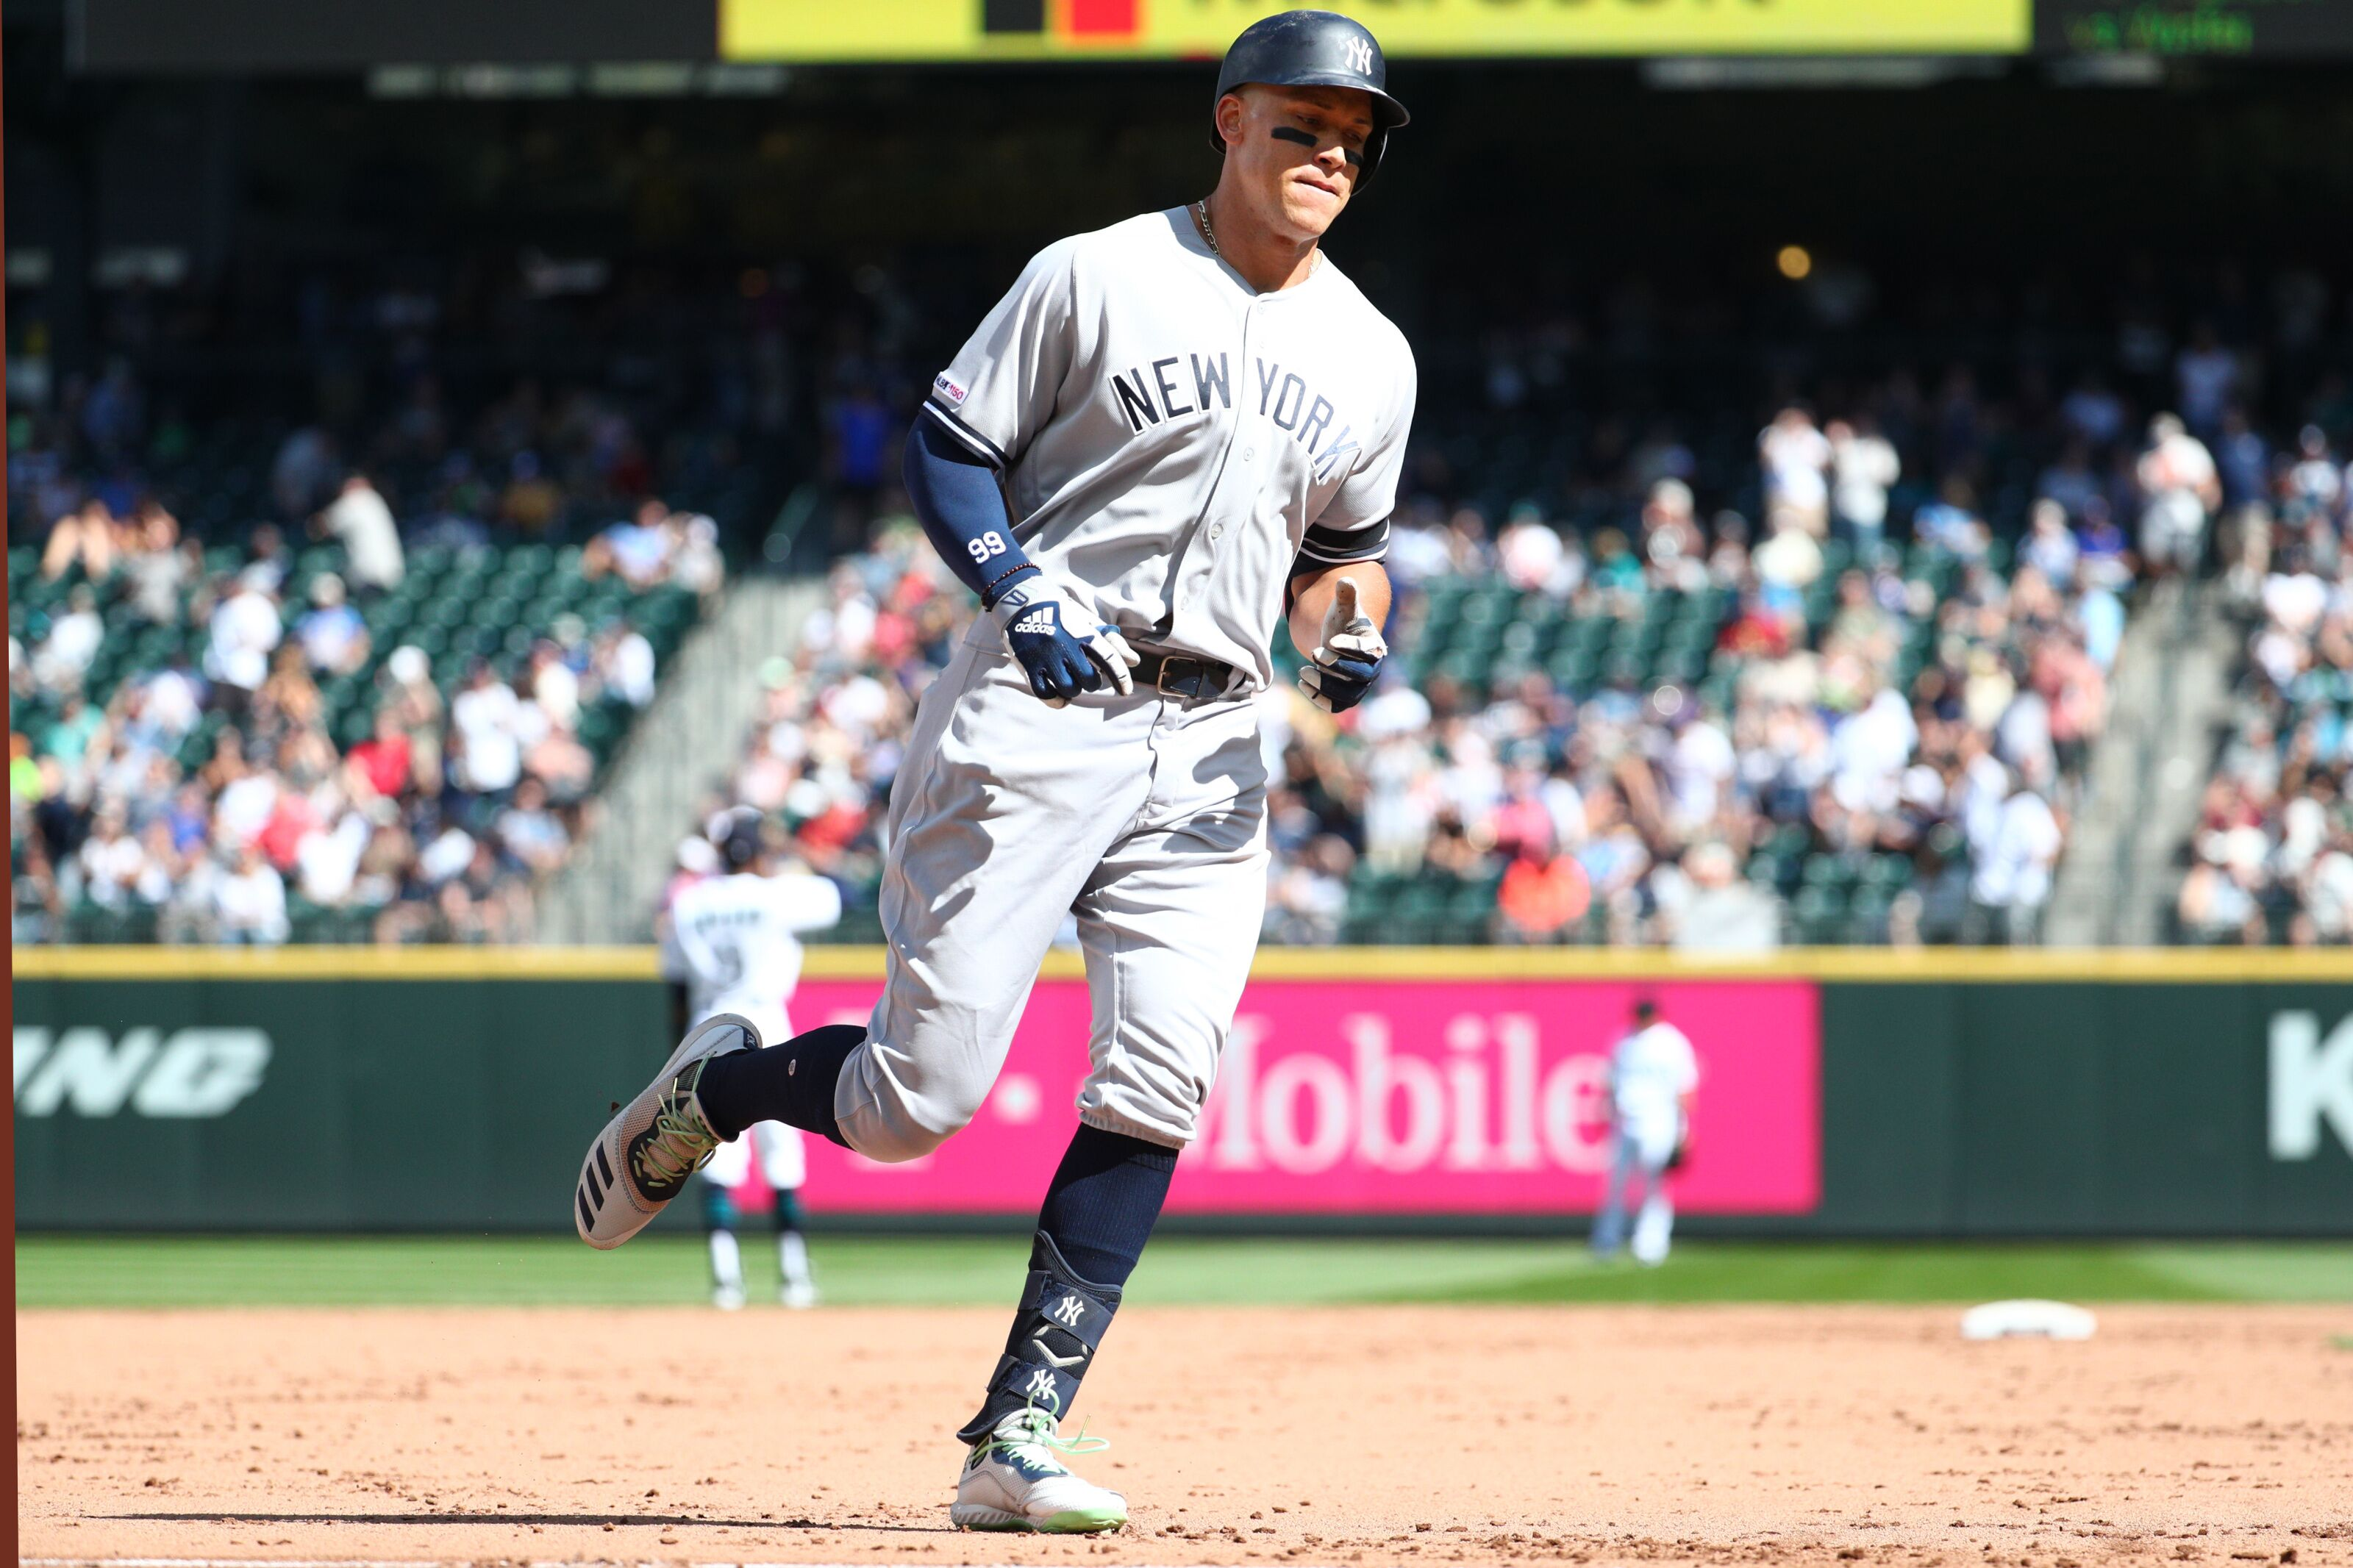 Yankees must lock up Aaron Judge long-term by next winter